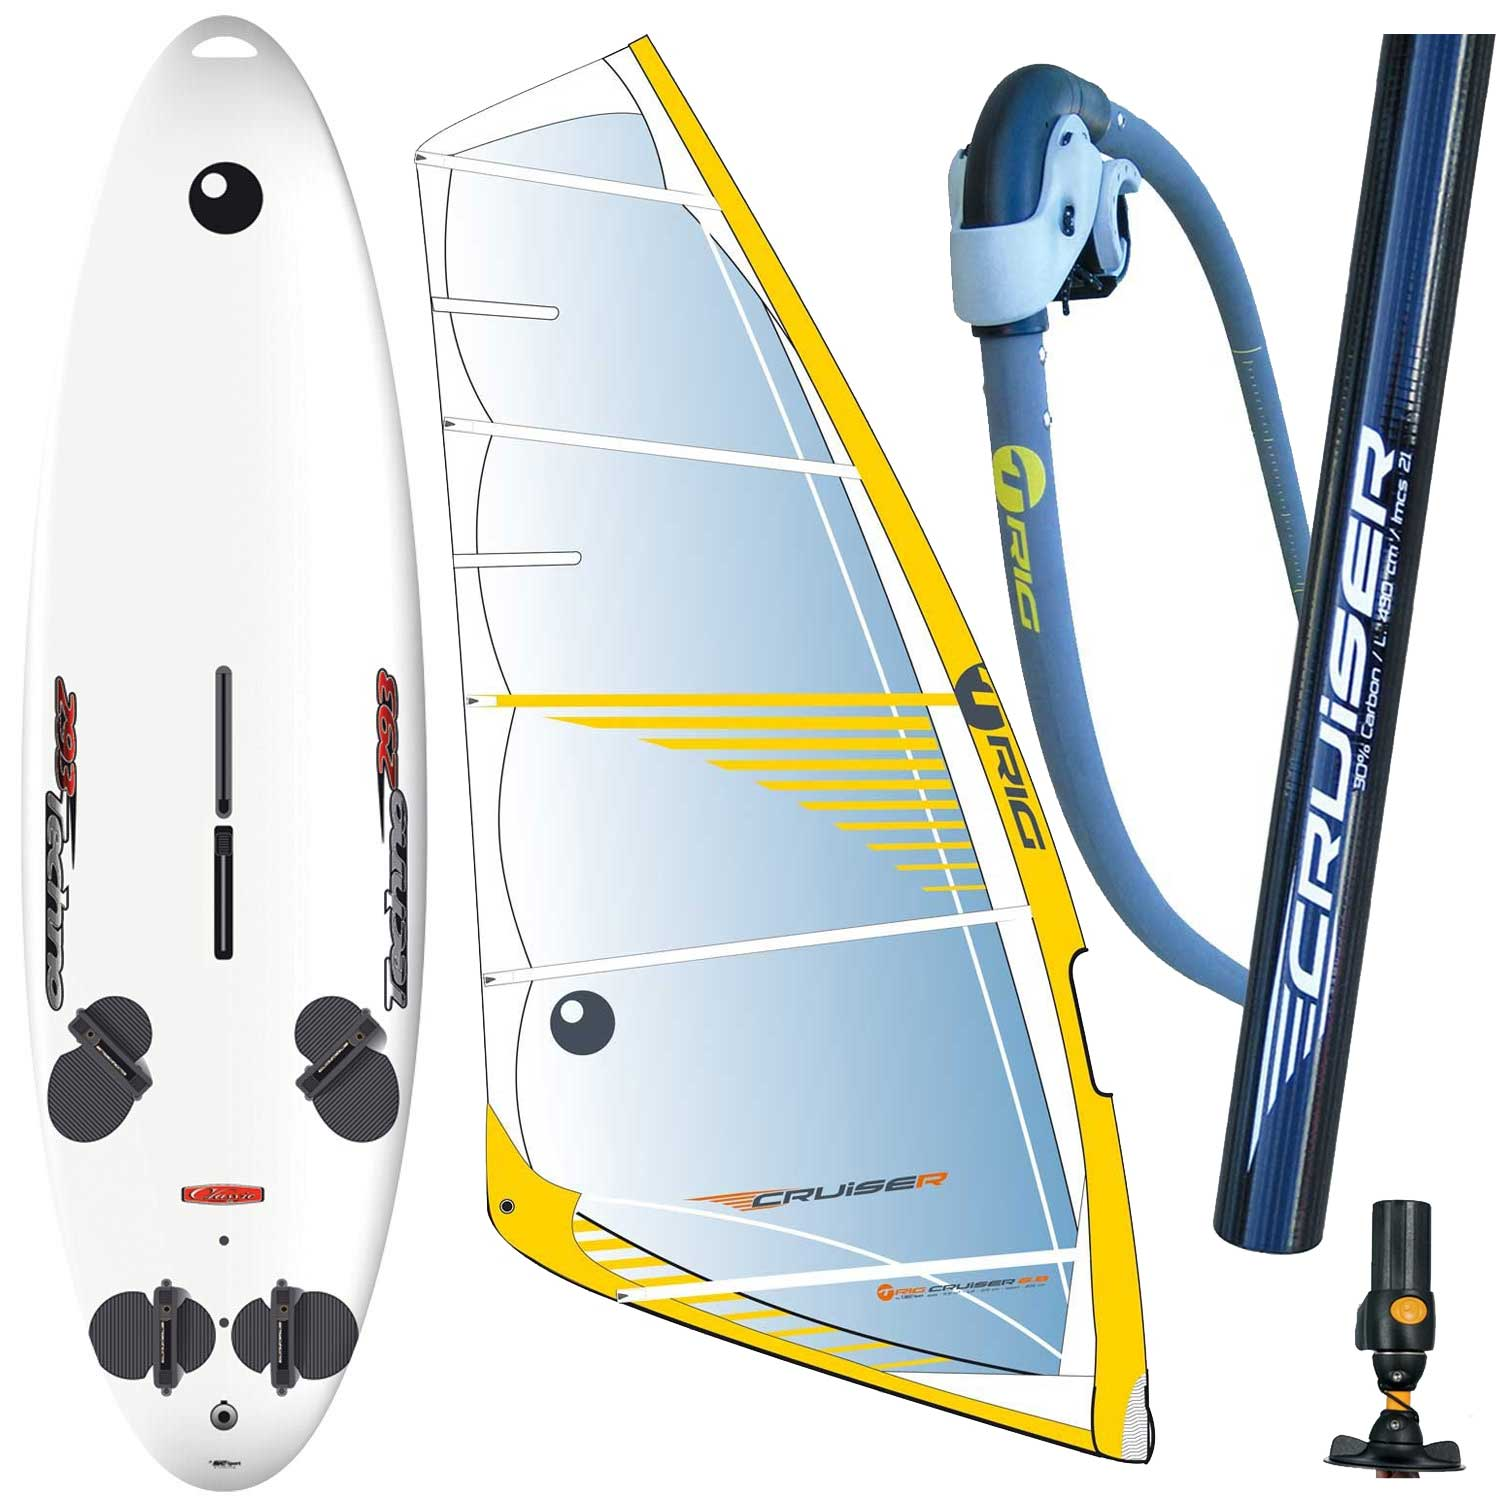 Windsurfing, Are You As Smart As I Am